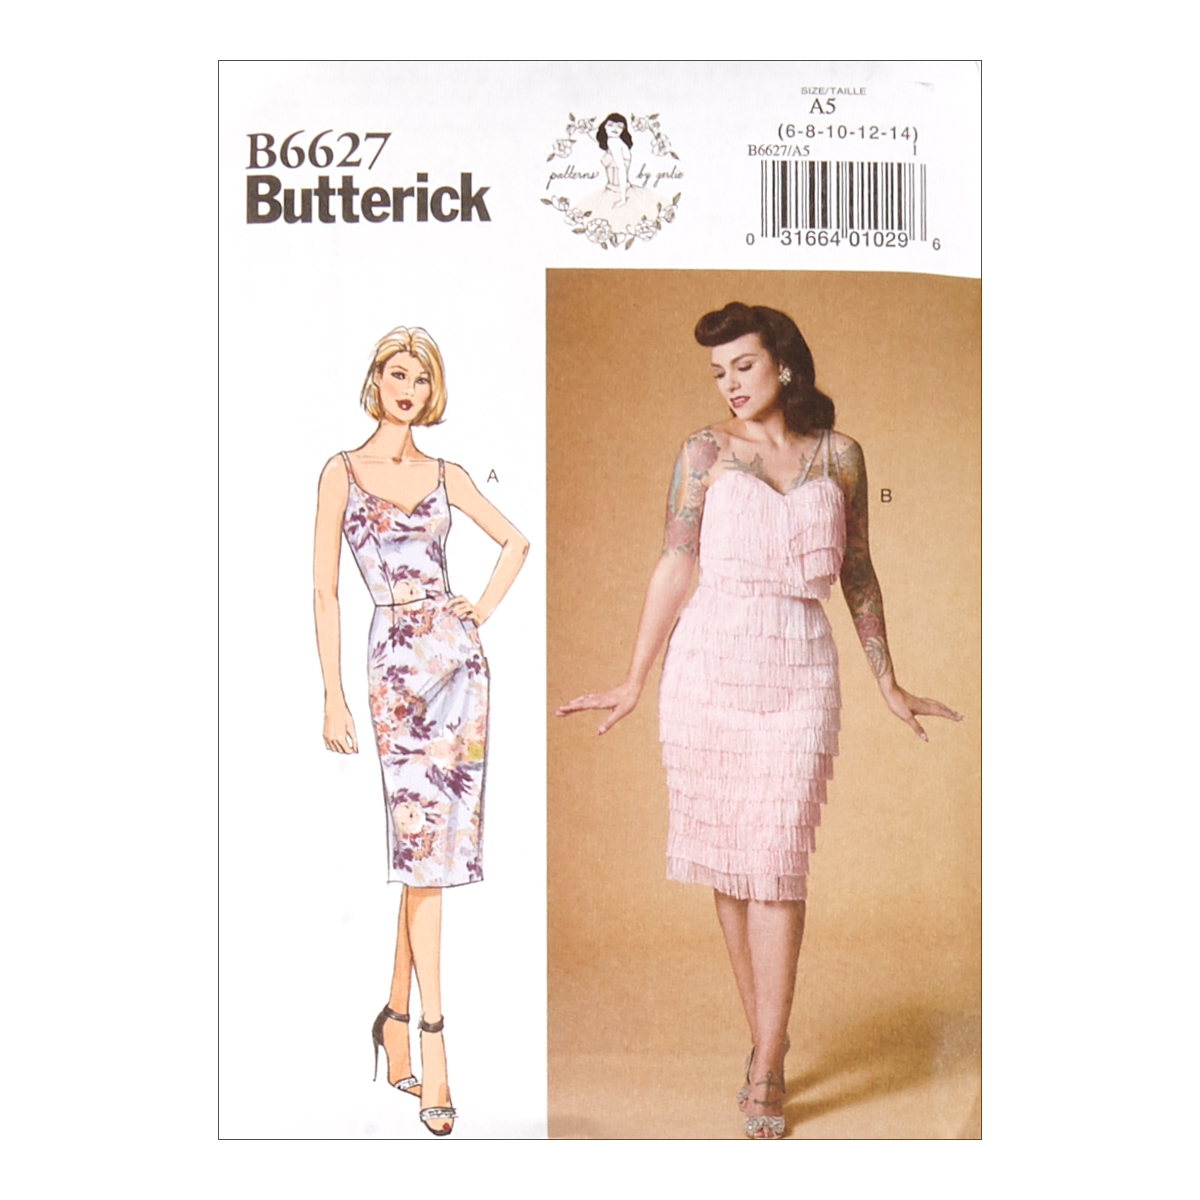 1950s Sewing Patterns | Dresses, Skirts, Tops, Mens Butterick B6627 Patterns by Gertie Misses Dress A5 Sizes 6-14 $12.57 AT vintagedancer.com